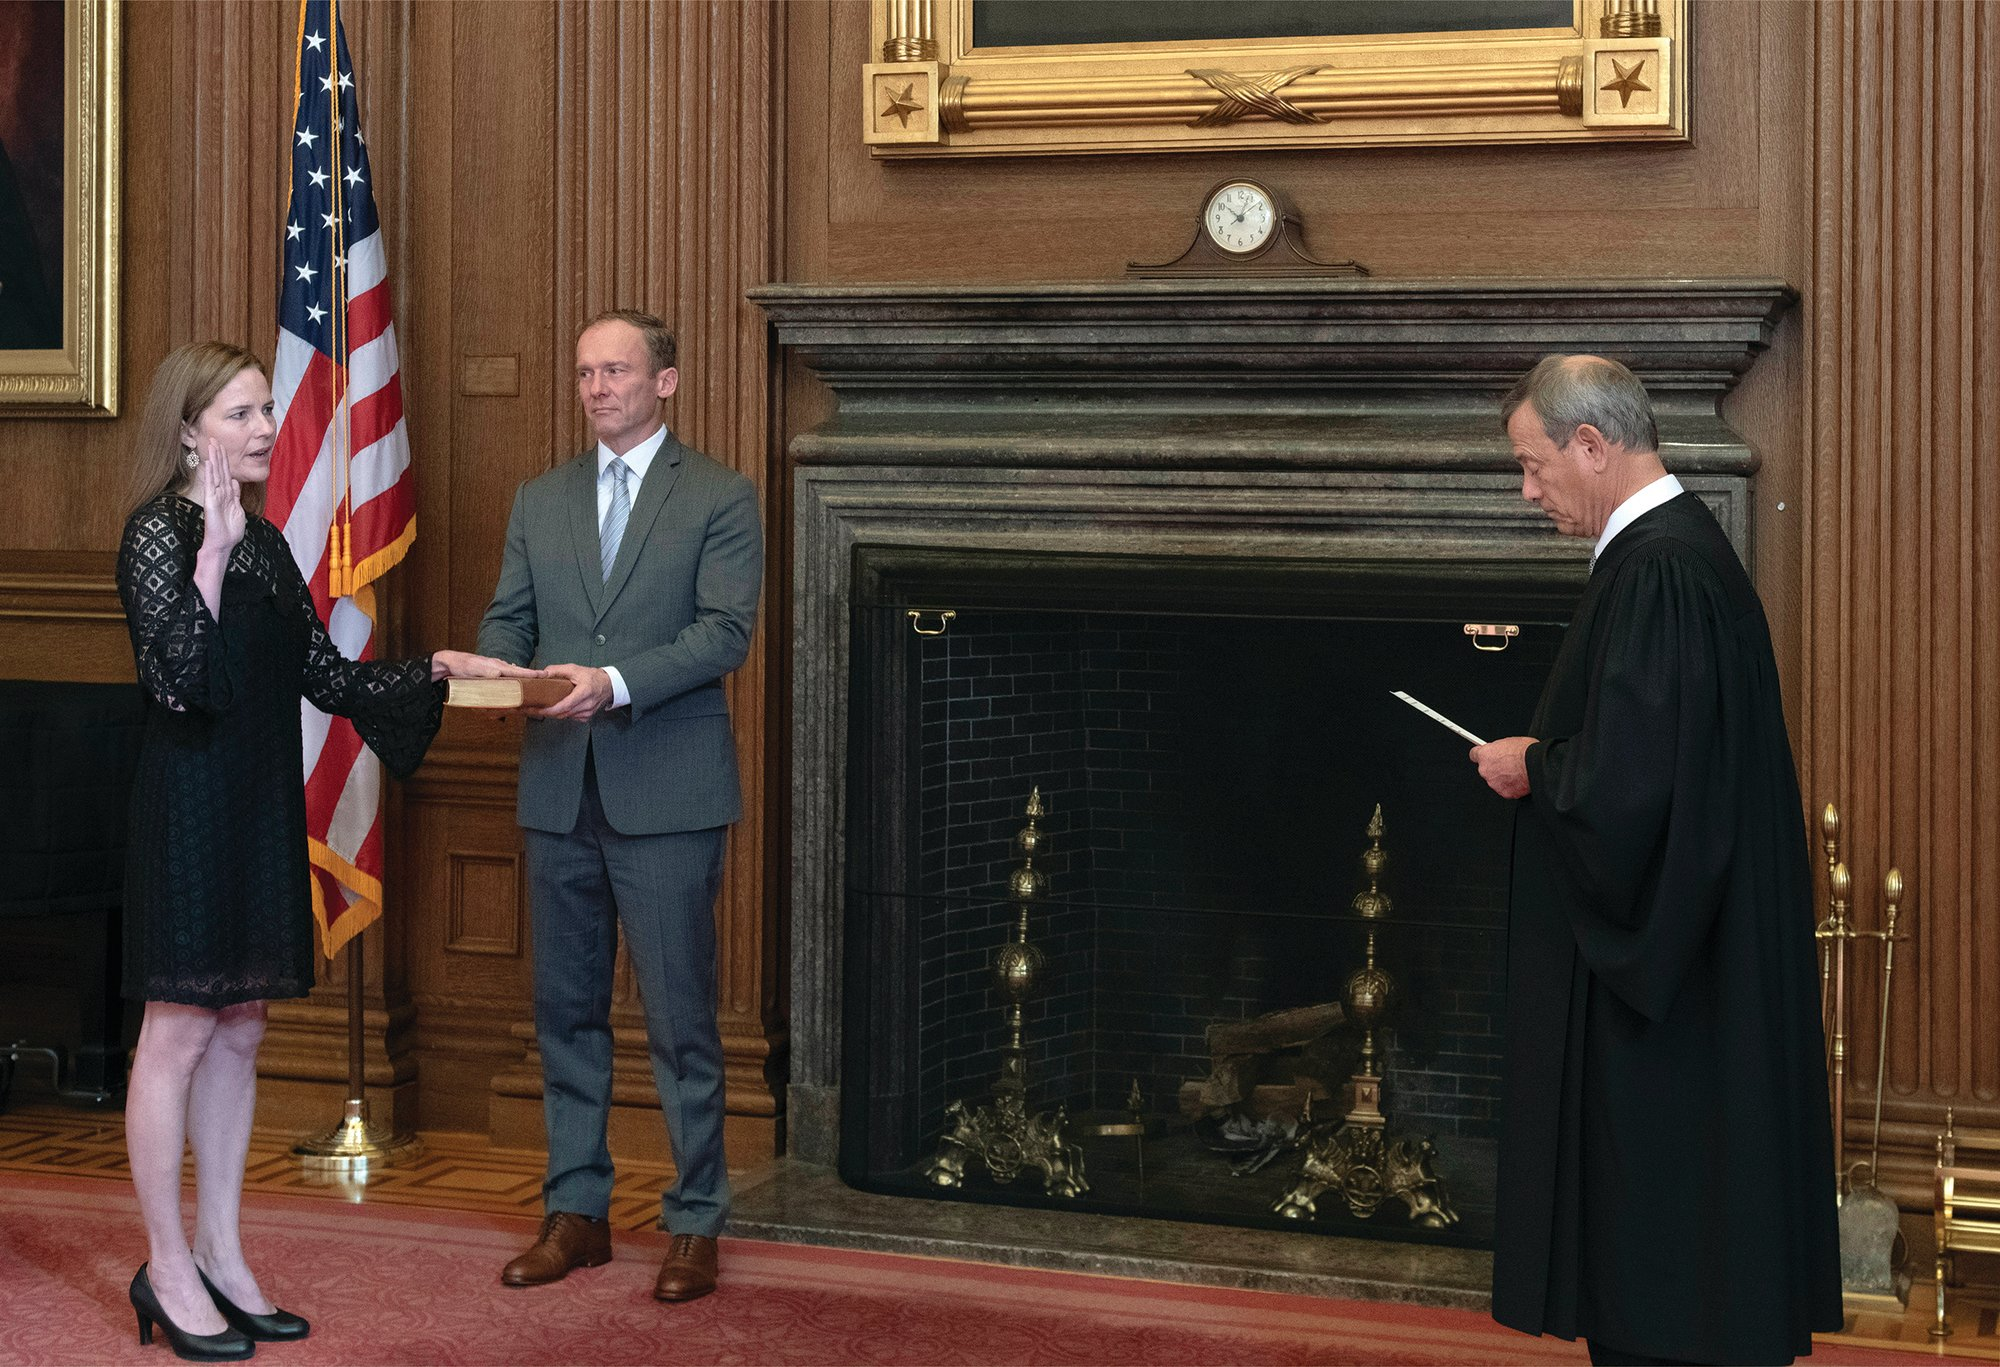 Fred Schilling / Collection of the Supreme Court of the United States via AP  Chief Justice John G. Roberts Jr., right, administers the Judicial Oath to Judge Amy Coney Barrett in the East Conference Room of the Supreme Court Building on Tuesday in Washington as Judge Barrett's husband, Jesse M. Barrett, holds the Bible.